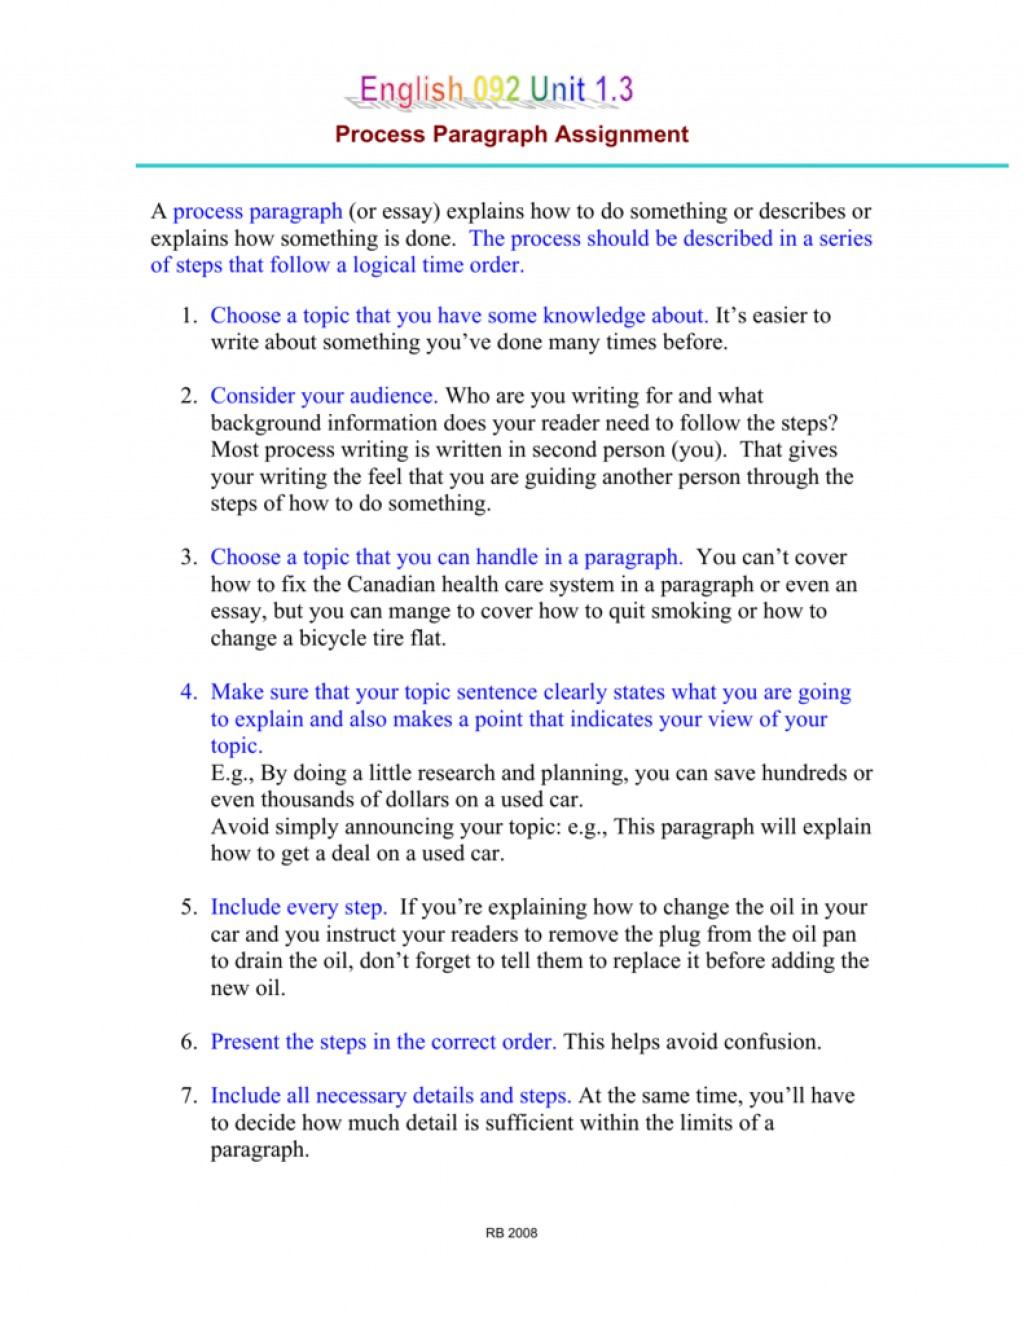 004 008274325 1 Steps For Writing An Essay In The Correct Order Stunning Arrange From First To Last Large